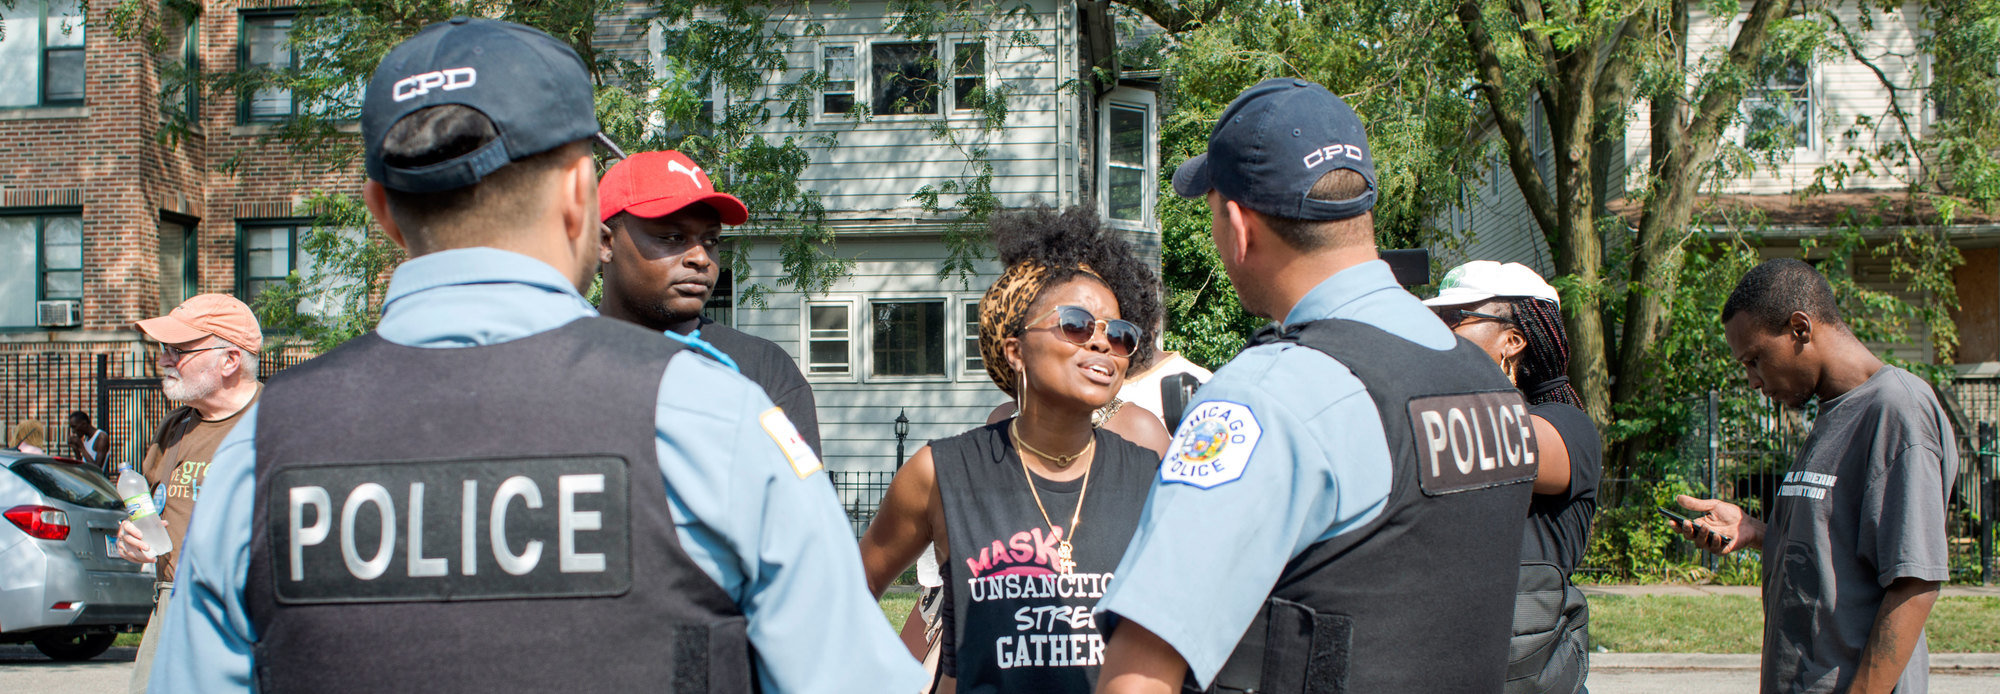 Why Police Should Embrace Communities—Not Shut Them Out